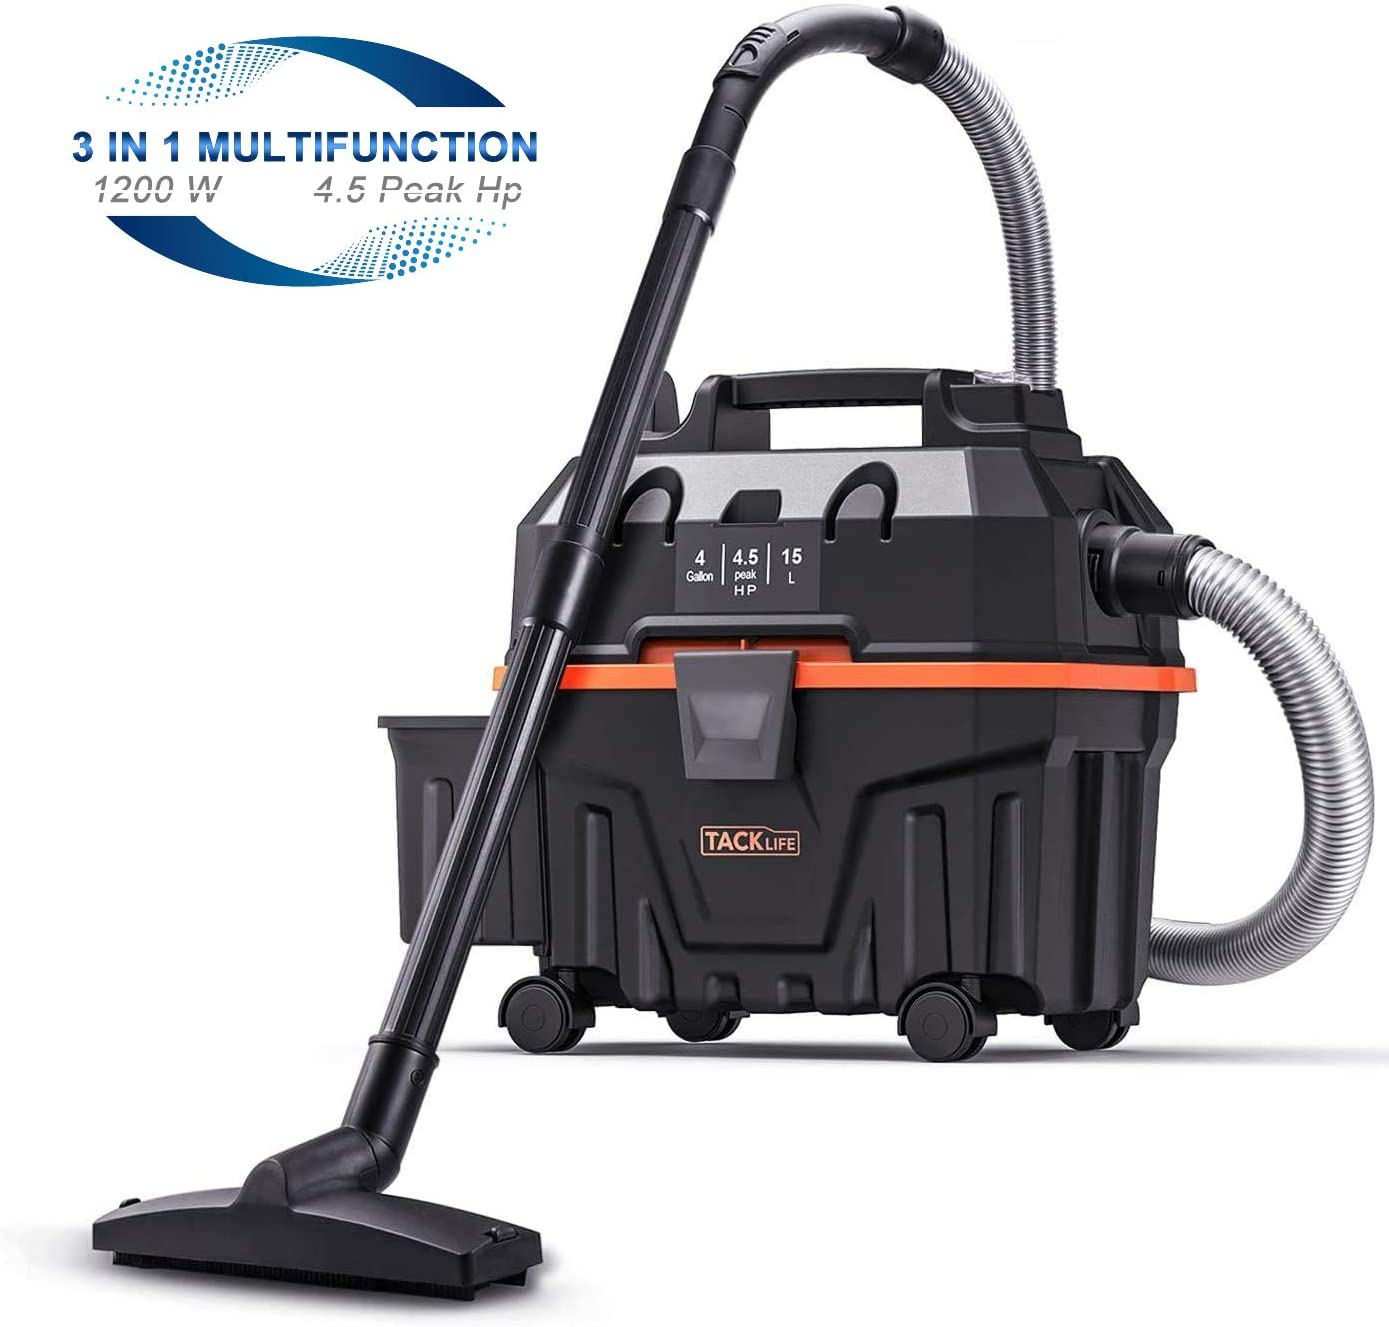 TACKLIFE Wet and Dry Vacuum, Shop Vac, 4.5 Peak Hp 4 Gallon Bagless, 1200W, Wet Suction/Dry Suction/Blowing 3 in 1 Function, Suitable for Job Site,Garage,Basement,Van,Workshop,Vehicle